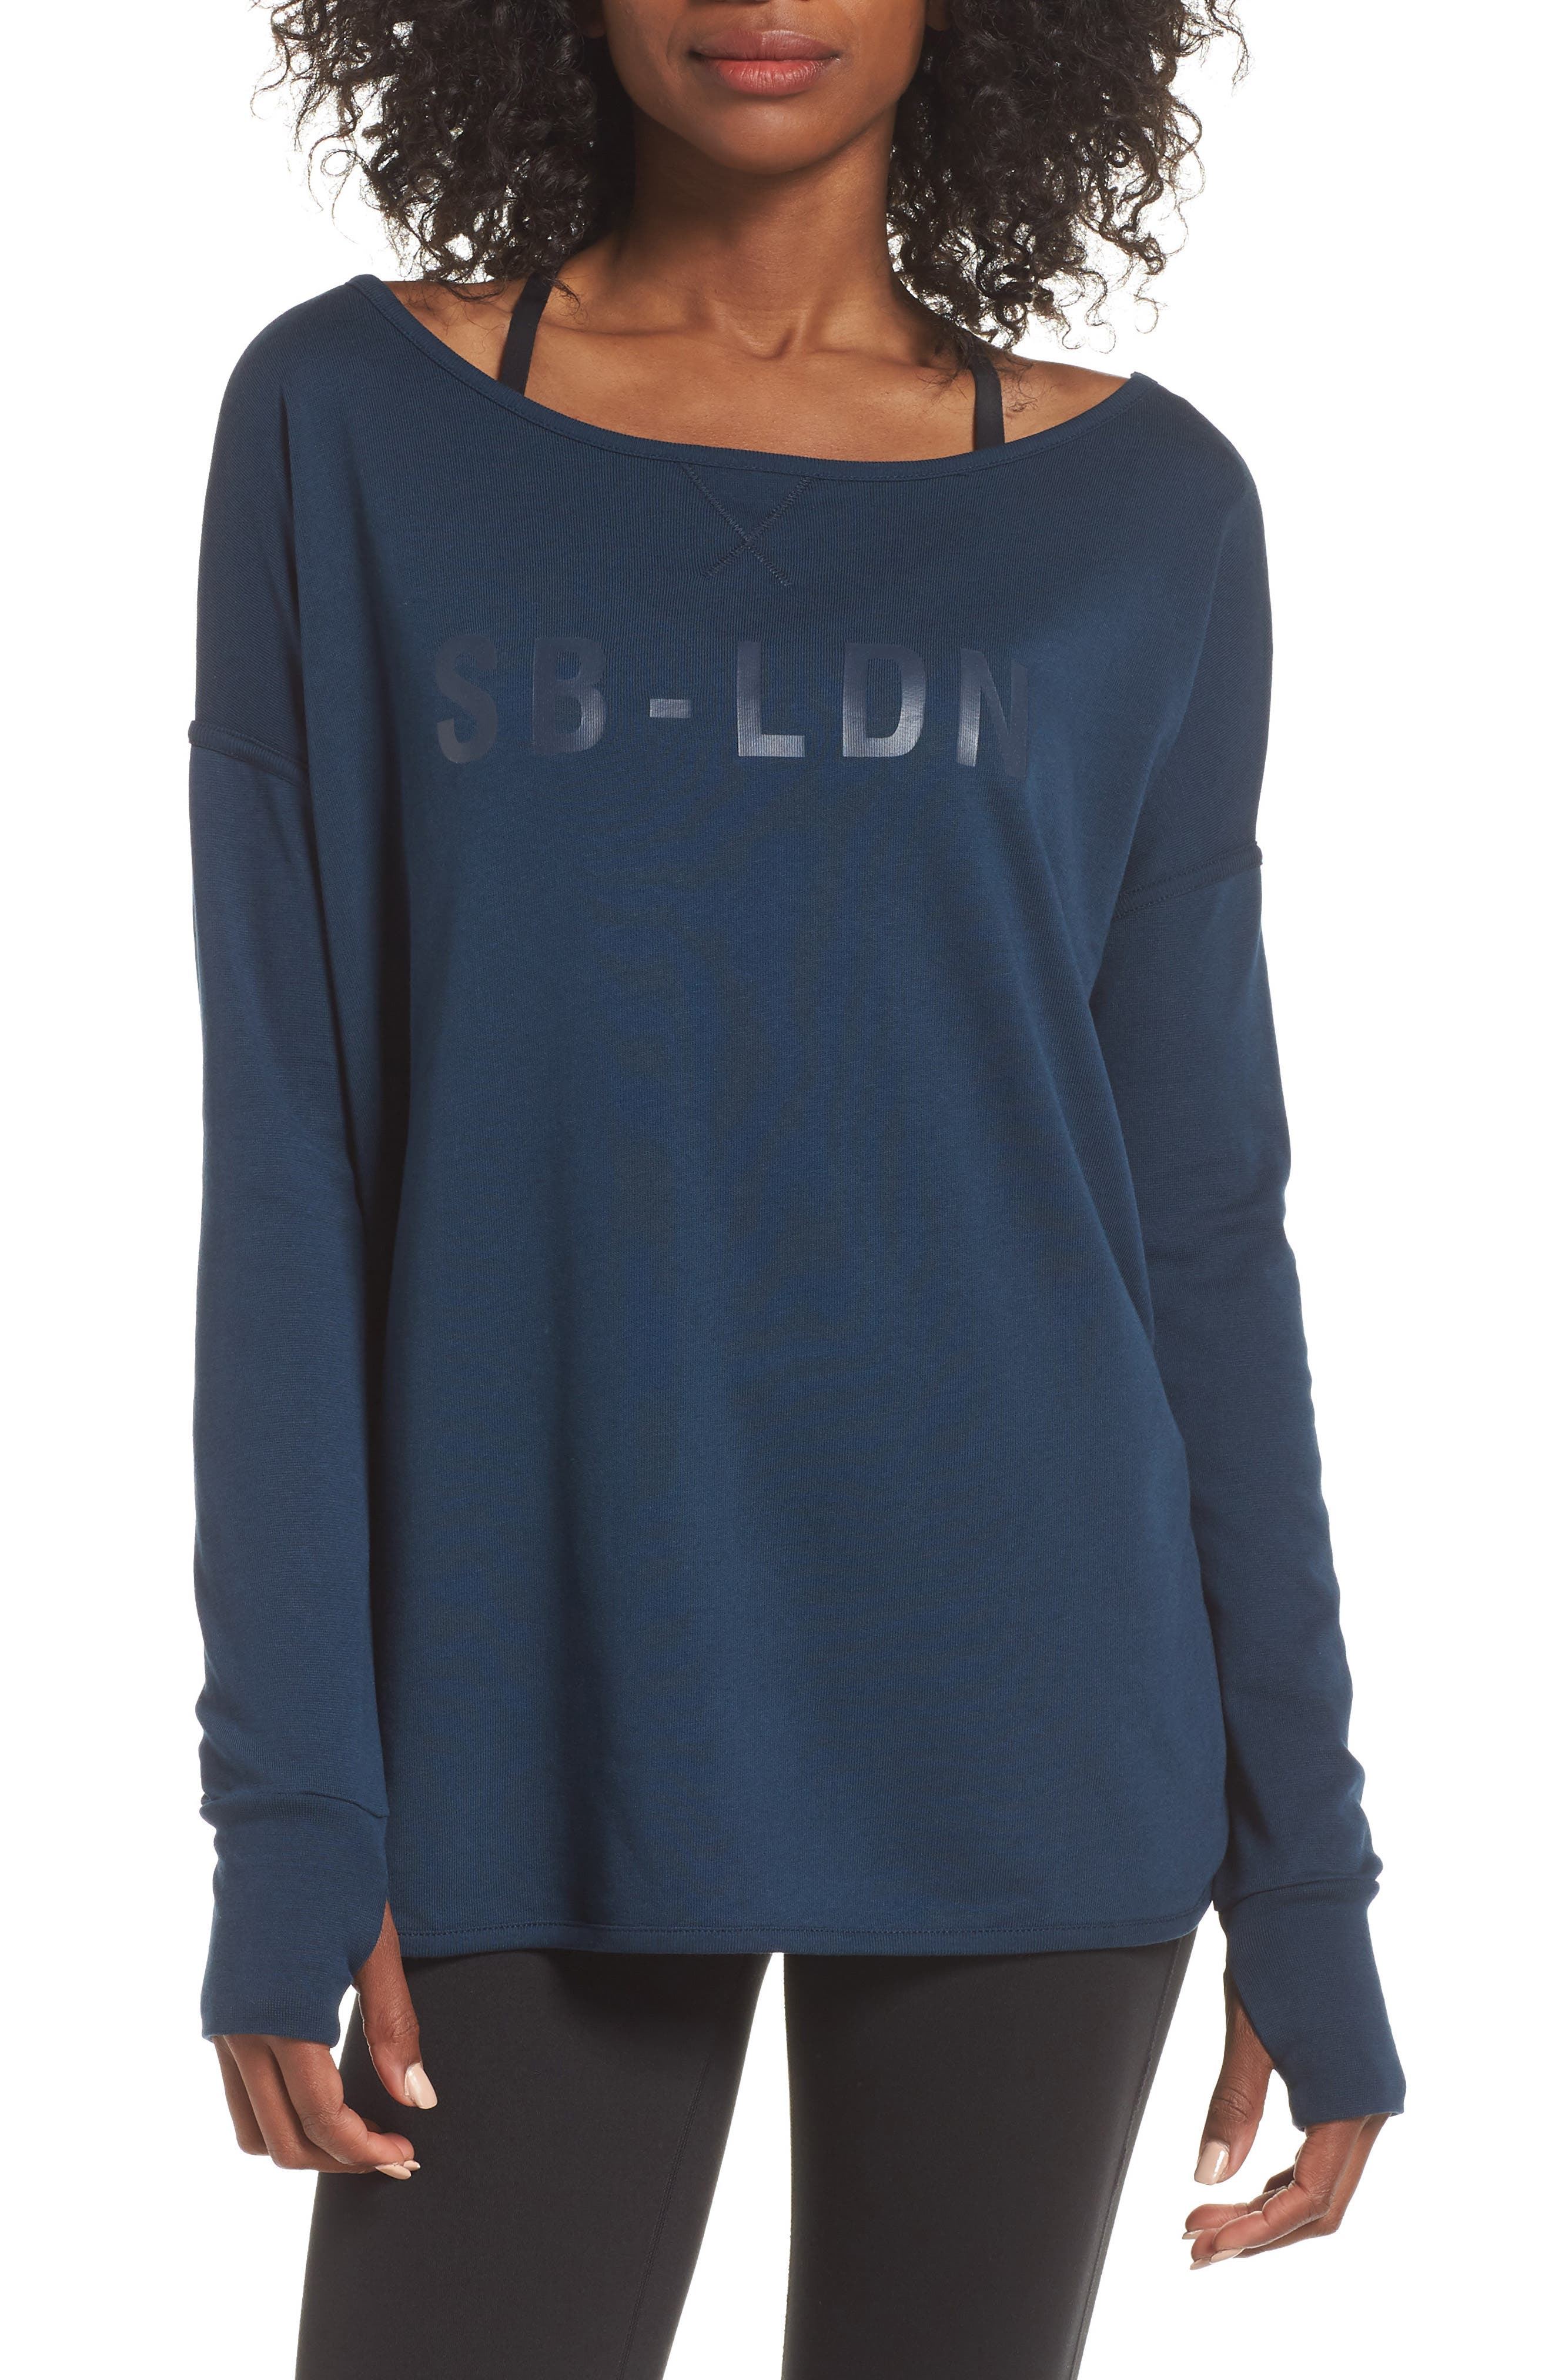 Simhasana Sweatshirt,                         Main,                         color, BEETLE BLUE